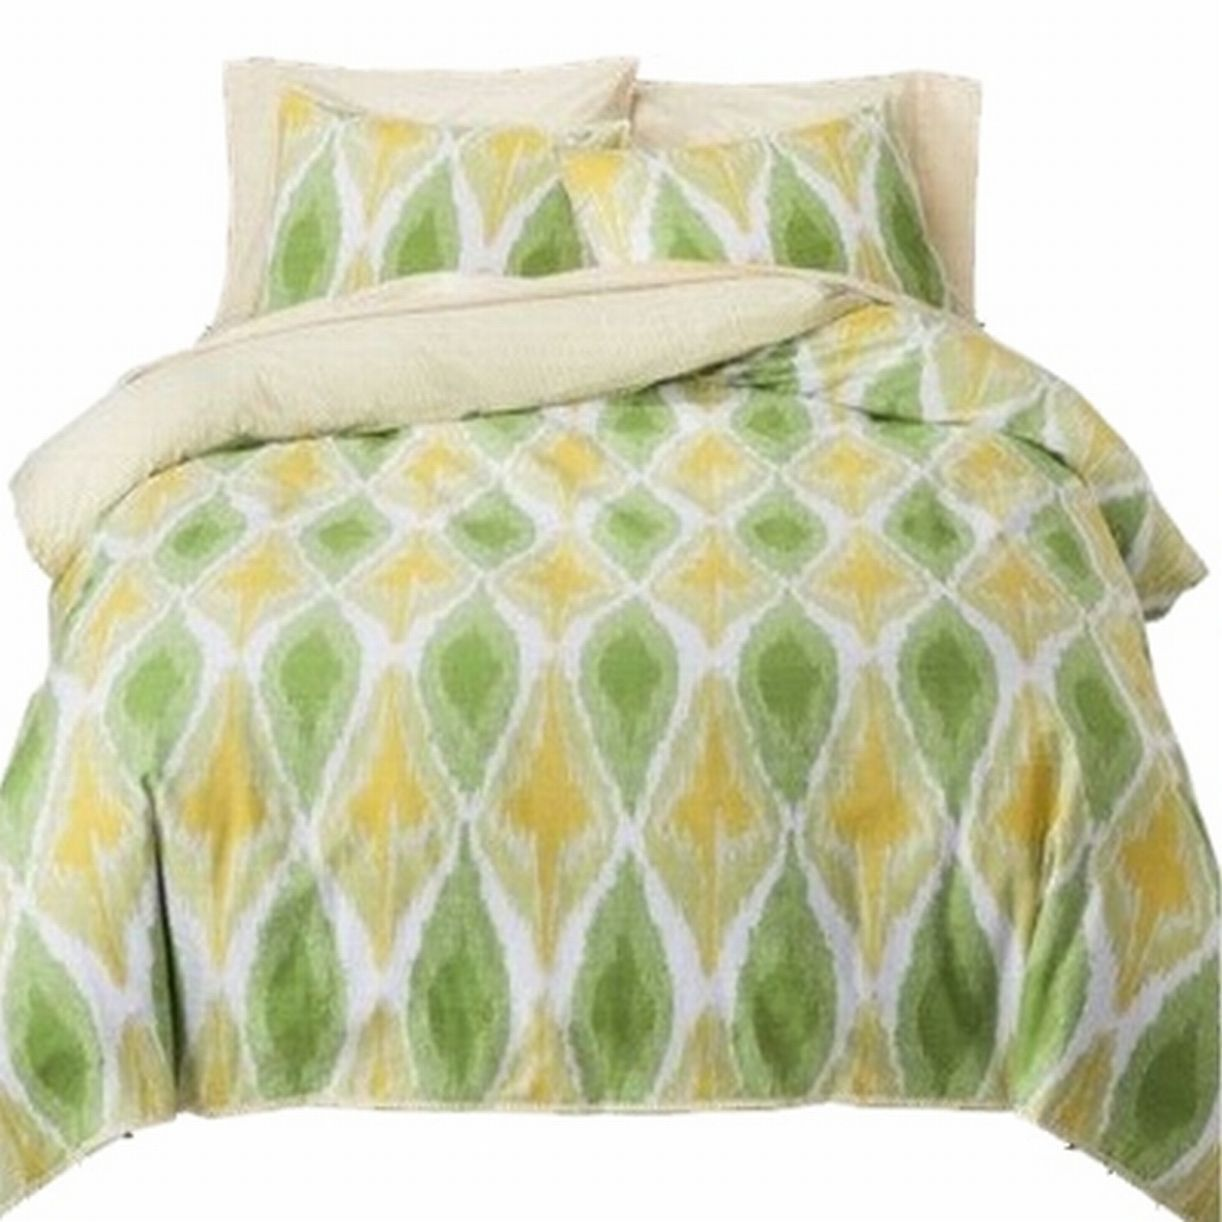 Threshold Yellow & Green Tie Dye Ikat 3 Pc Duvet Cover Set King Size Bed